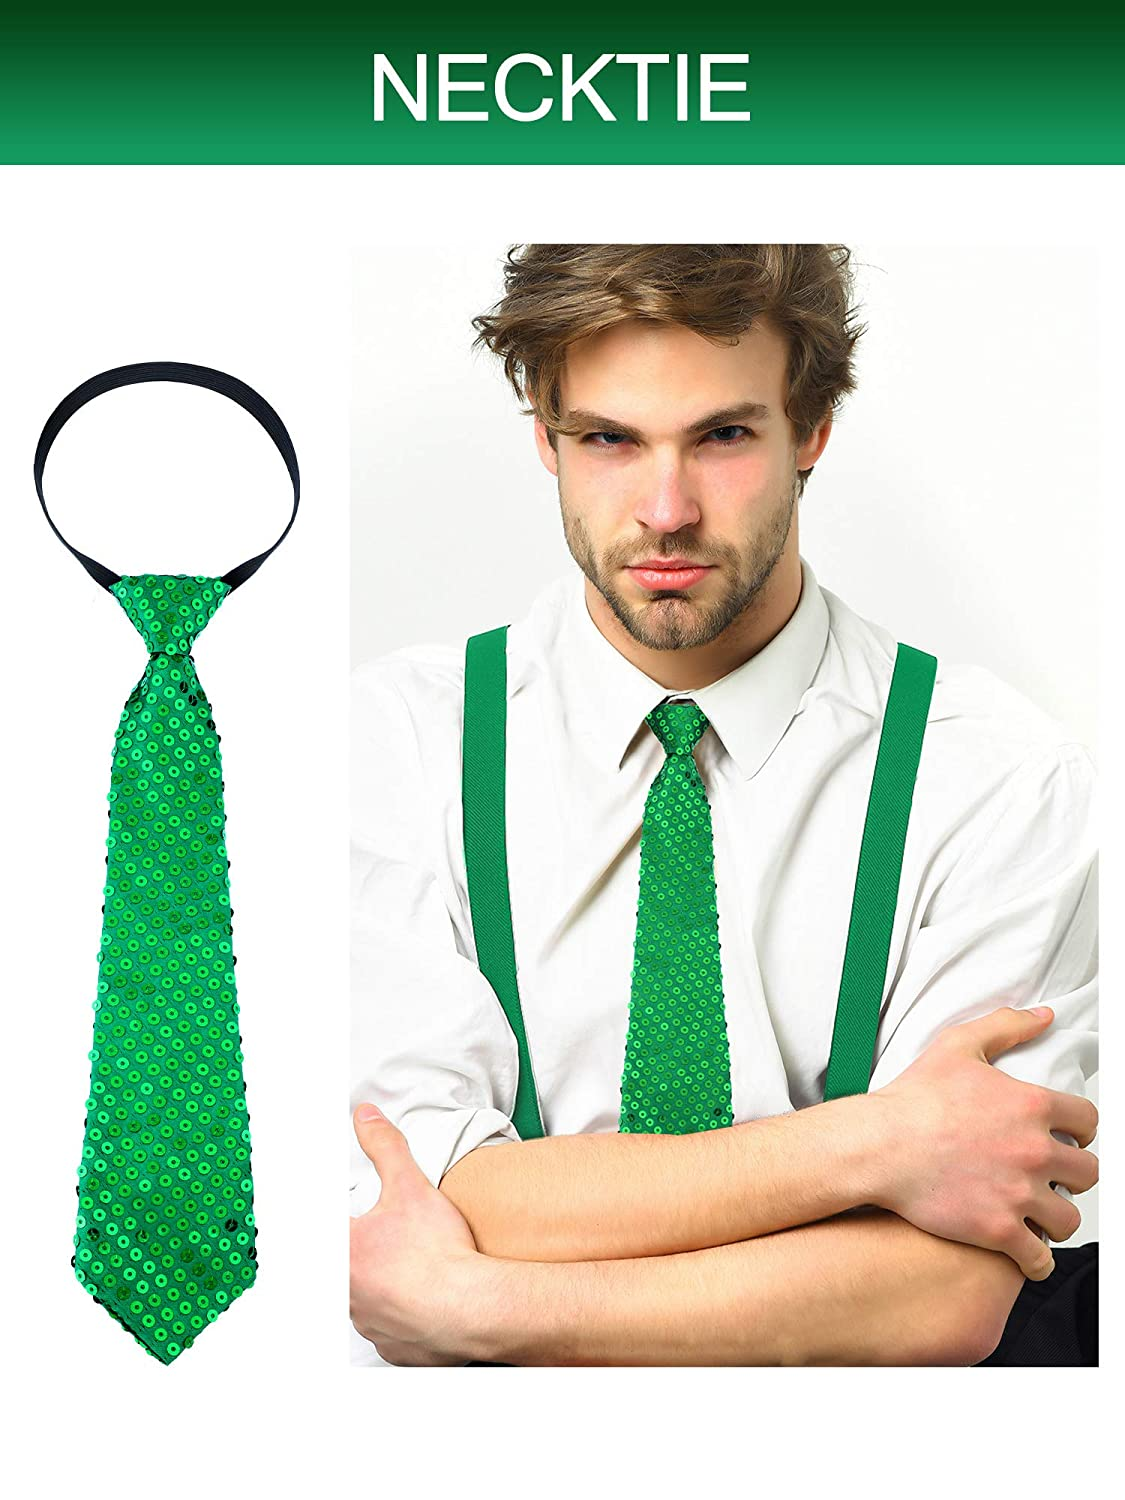 Patrick/'s Day Accessories 3 Pieces Patricks Day Costume Accessory Adjustable Pre-tied Bowtie Green Shamrock Necktie for Men Women St Blackish Green Chuangdi Y Back Suspender Pre-tied Bowtie Green Clover Necktie for St